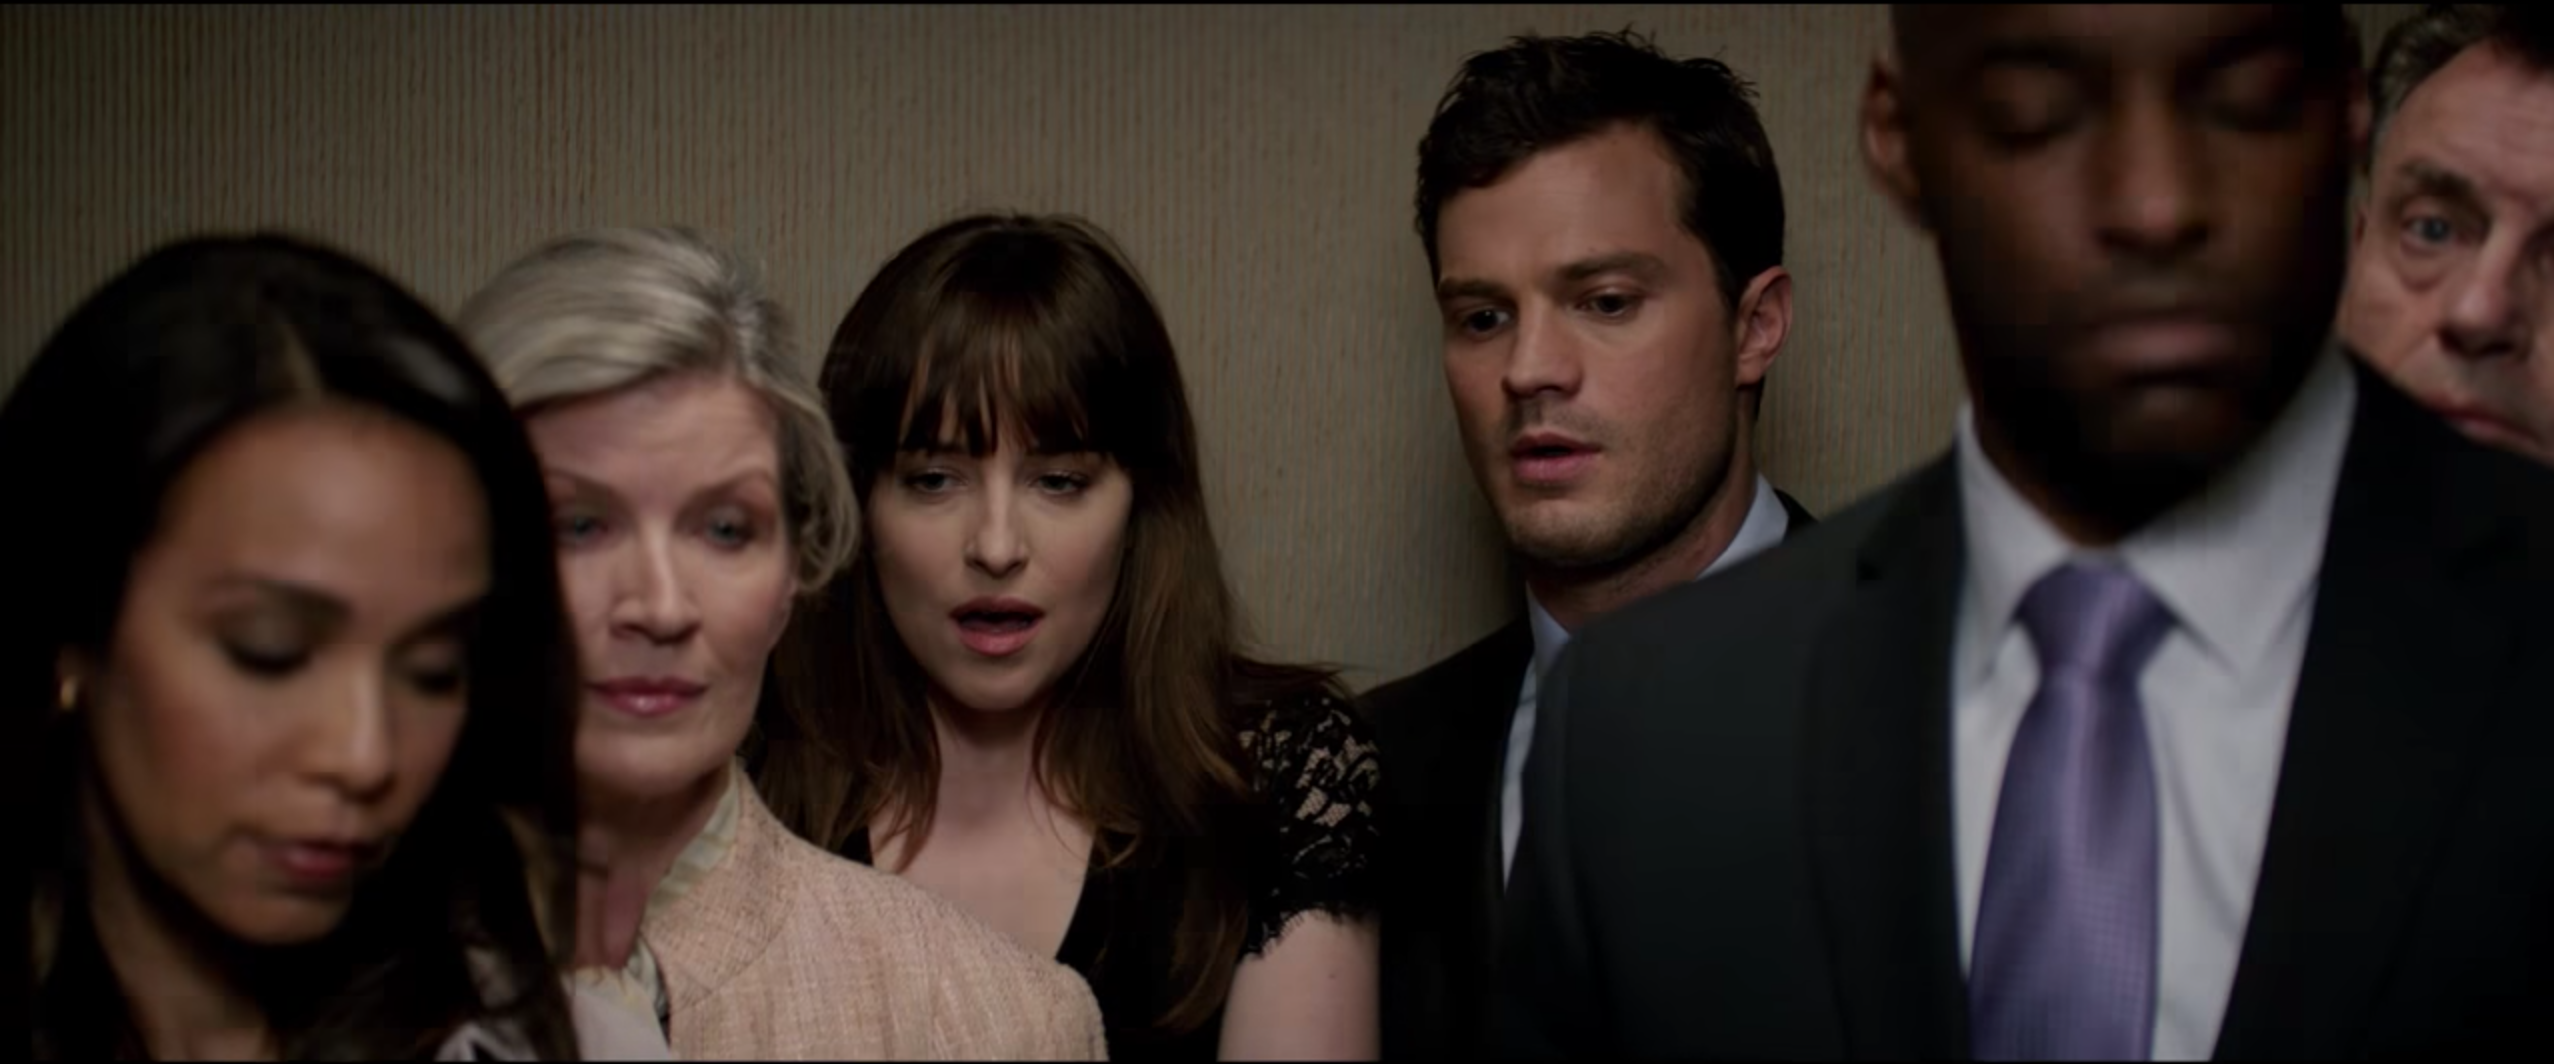 """Watch Christian and Anastasia have NSFW elevator fun in the steamiest """"Fifty Shades Darker"""" teaser yet"""